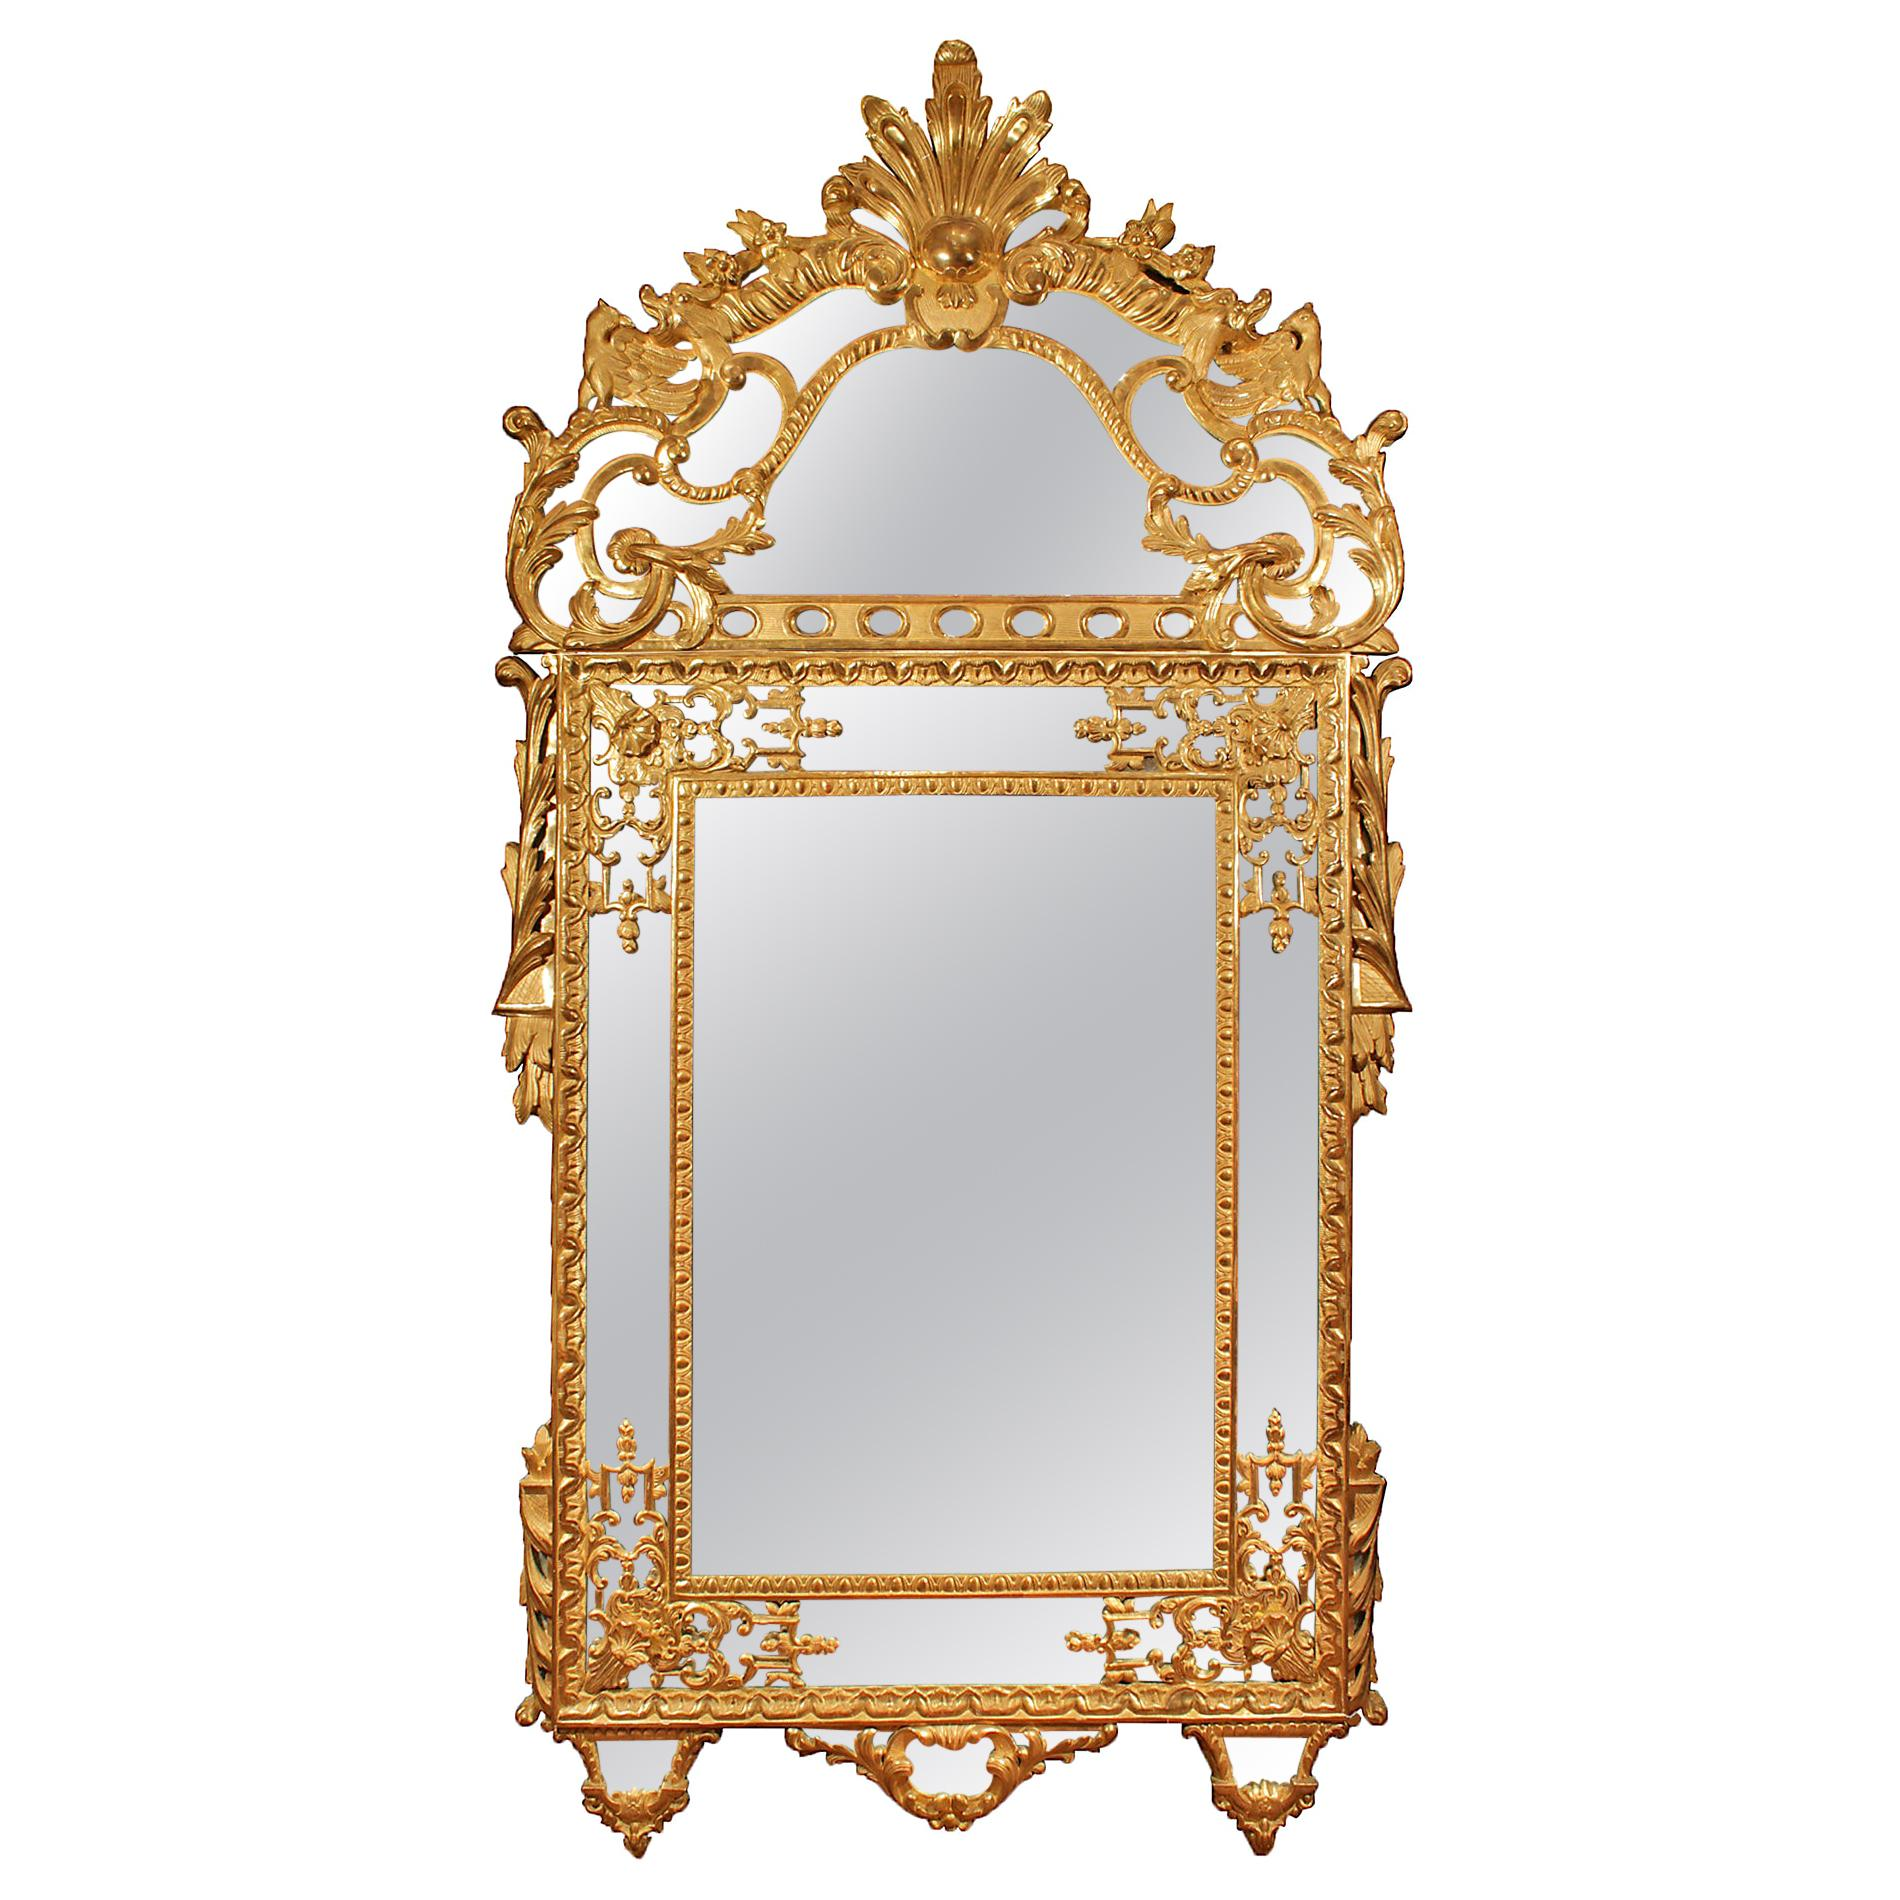 French Mid-19th Century Regence Style Giltwood Double Framed Mirror